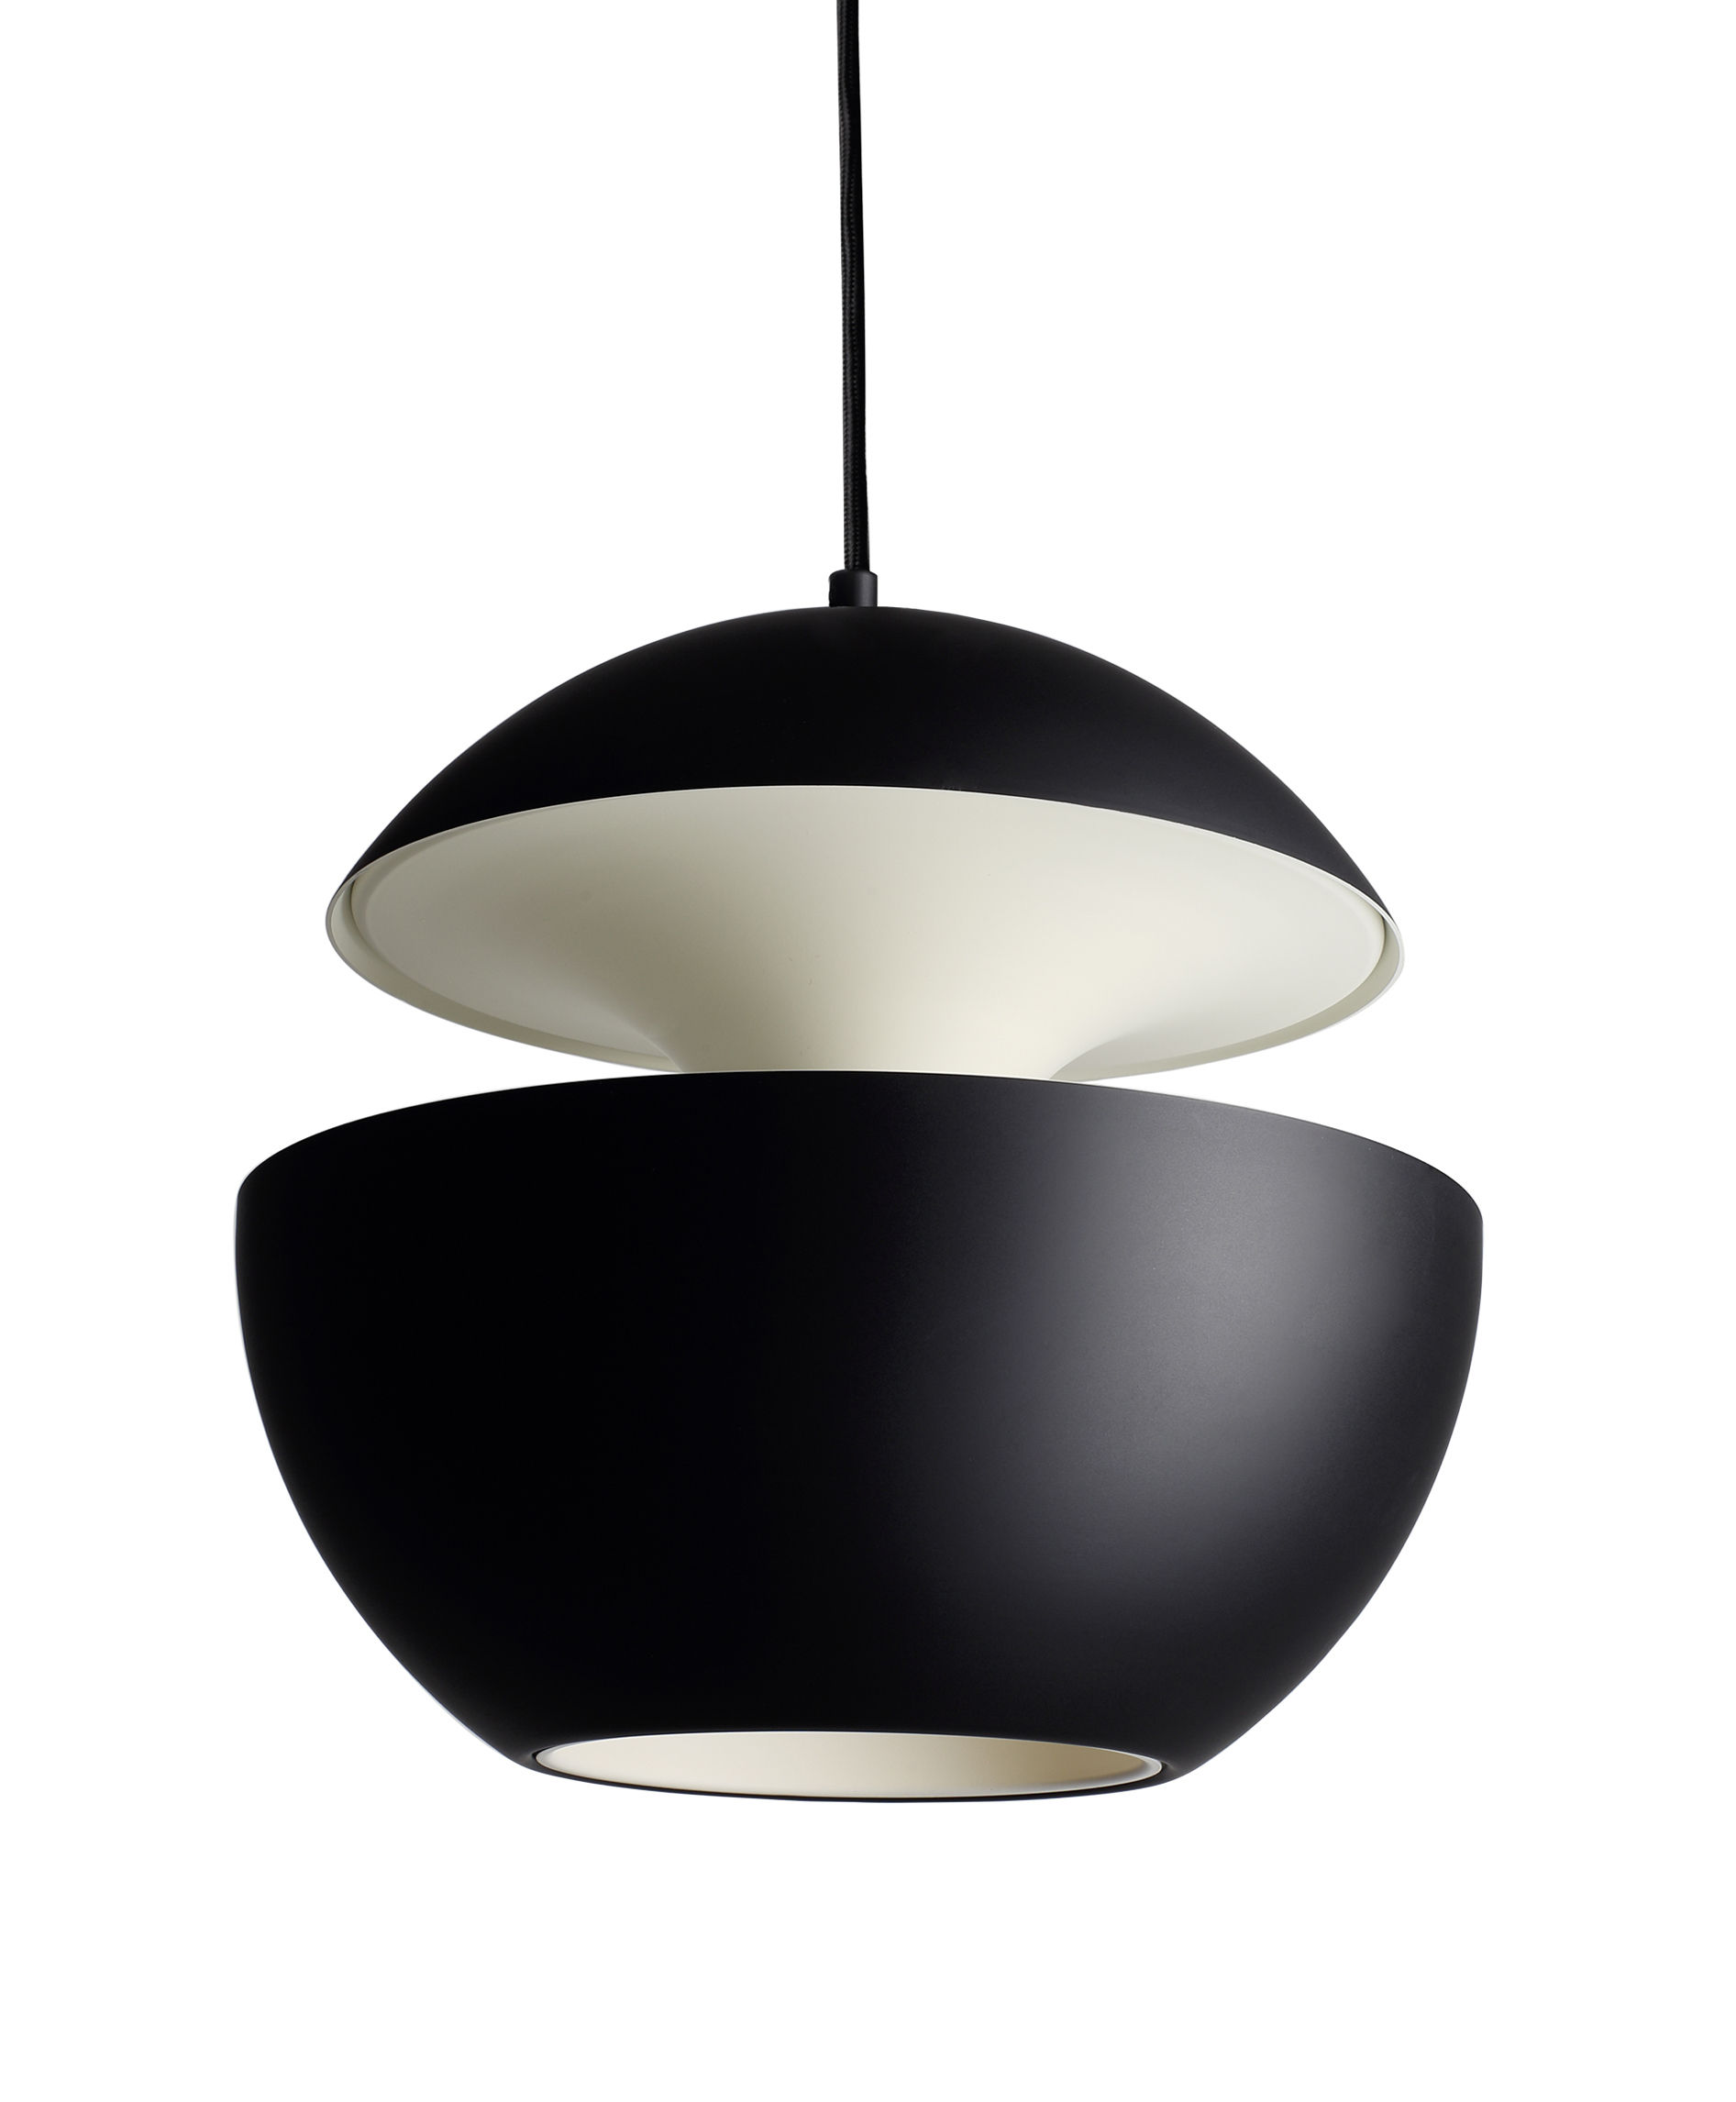 Lighting - Pendant Lighting - Here Comes The Sun Pendant - Ø 45 cm - 1970 reissue by DCW éditions - Lampes Gras - Black / White inside - Aluminium, Textile